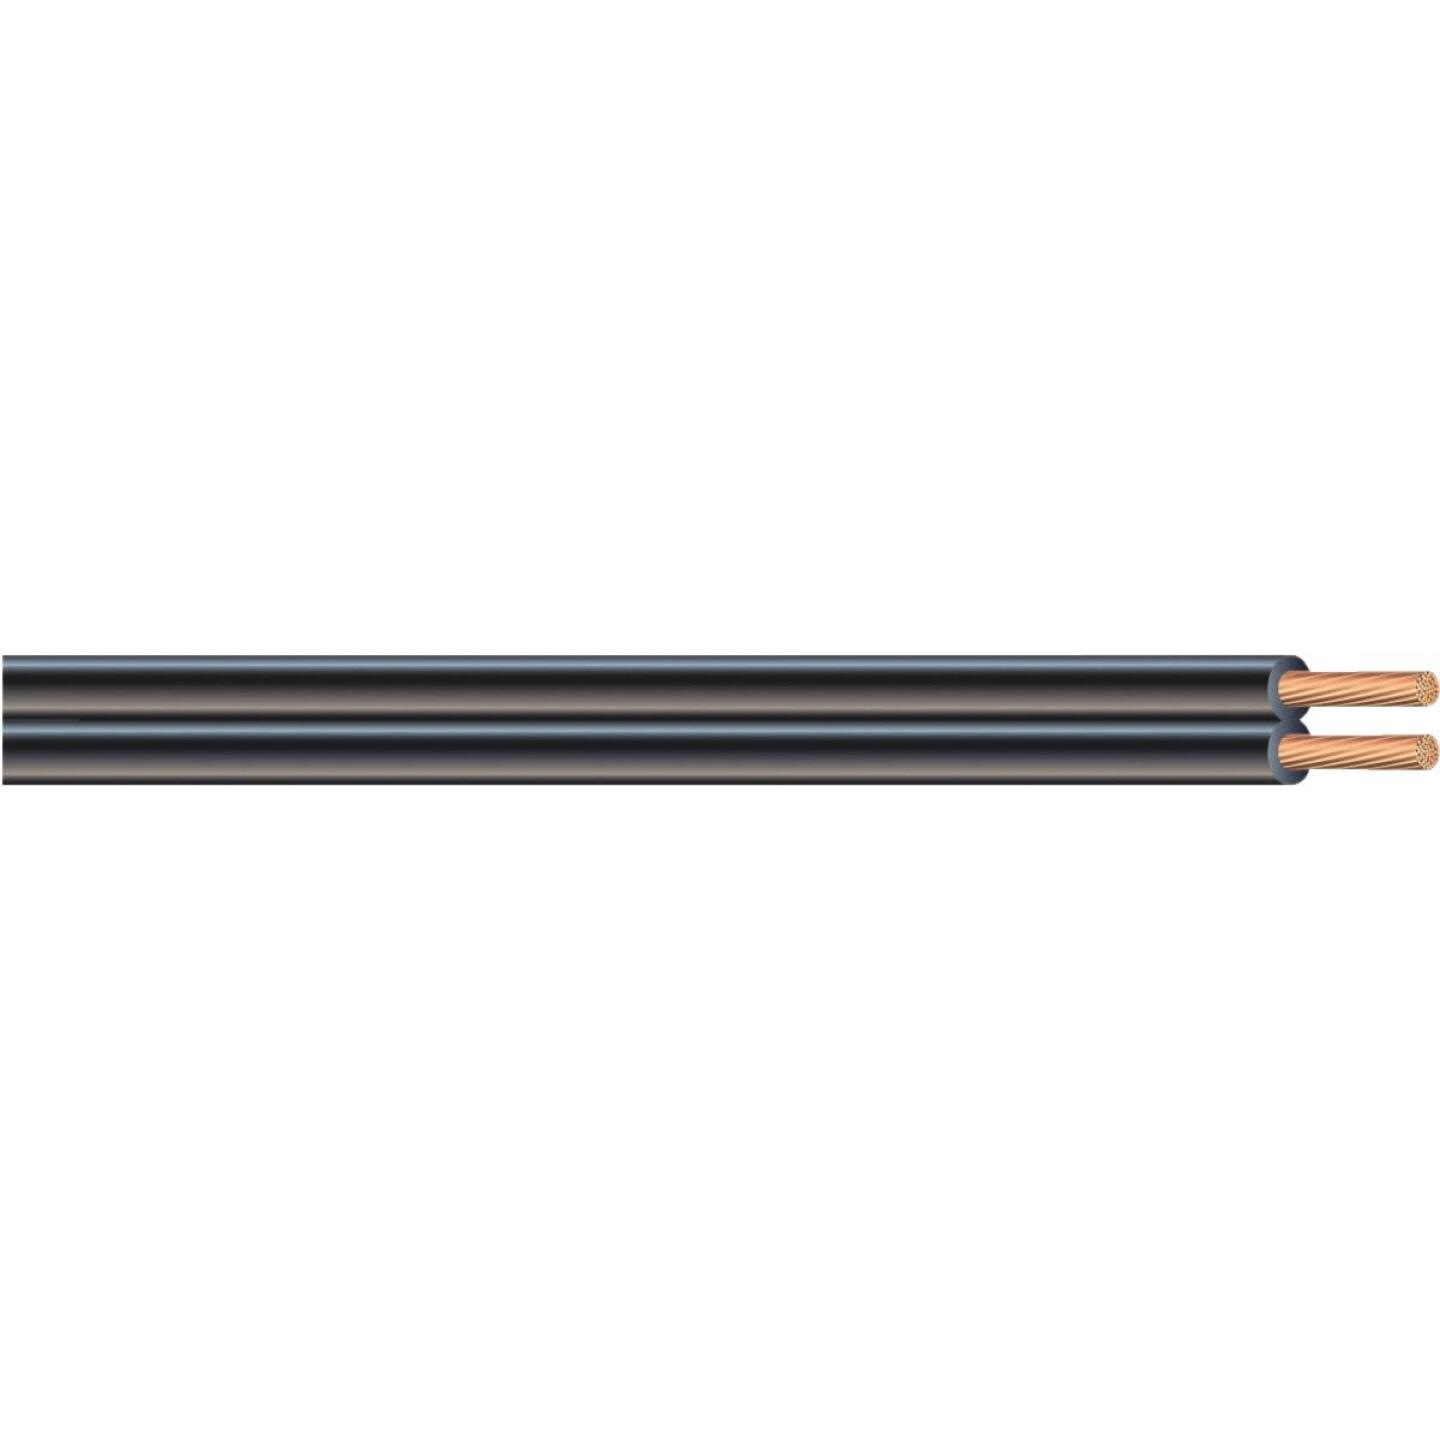 Southwire 100 Ft. 12-2 Stranded Low Voltage Cable Image 1